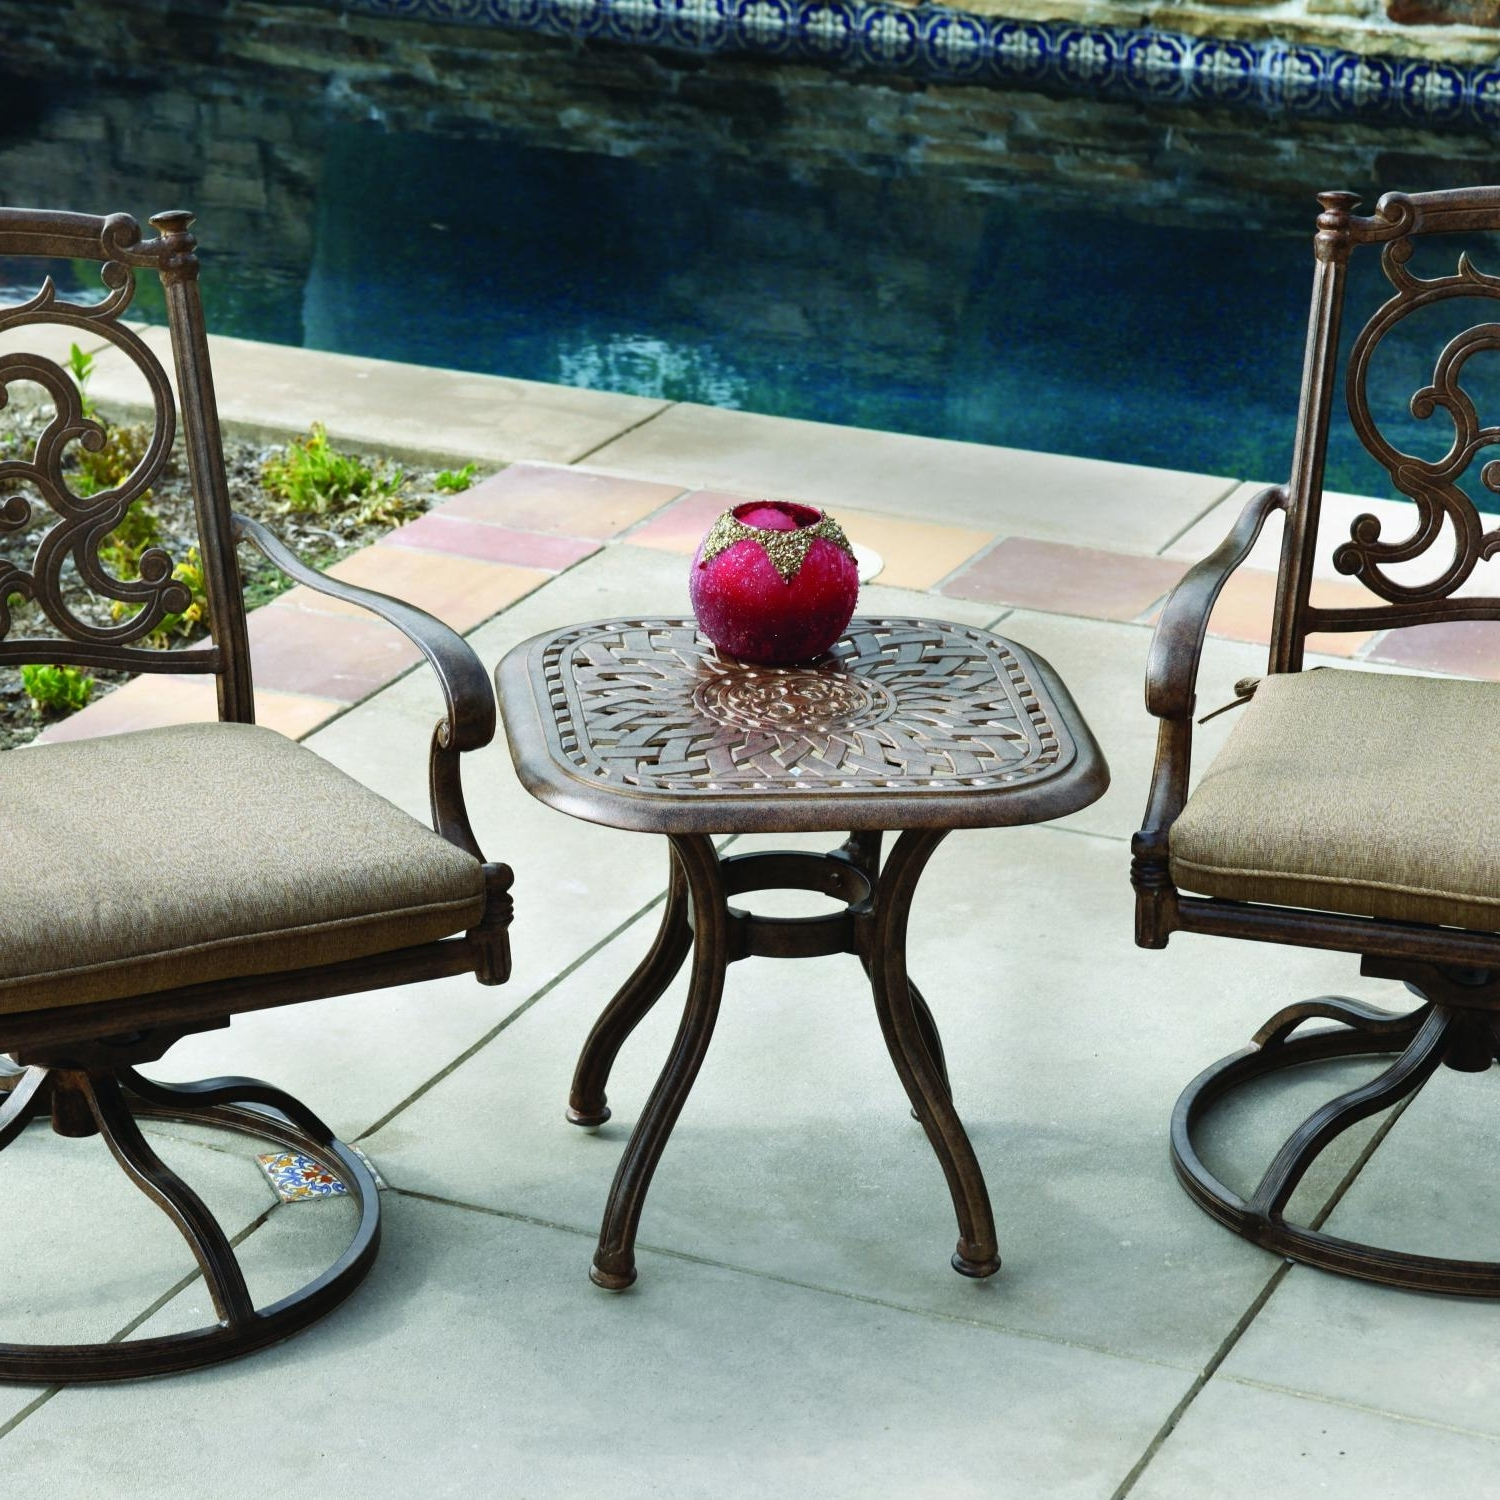 Patio Conversation Sets With Rockers Pertaining To 2018 Darlee Santa Barbara 3 Piece Cast Aluminum Patio Bistro Set With (View 16 of 20)